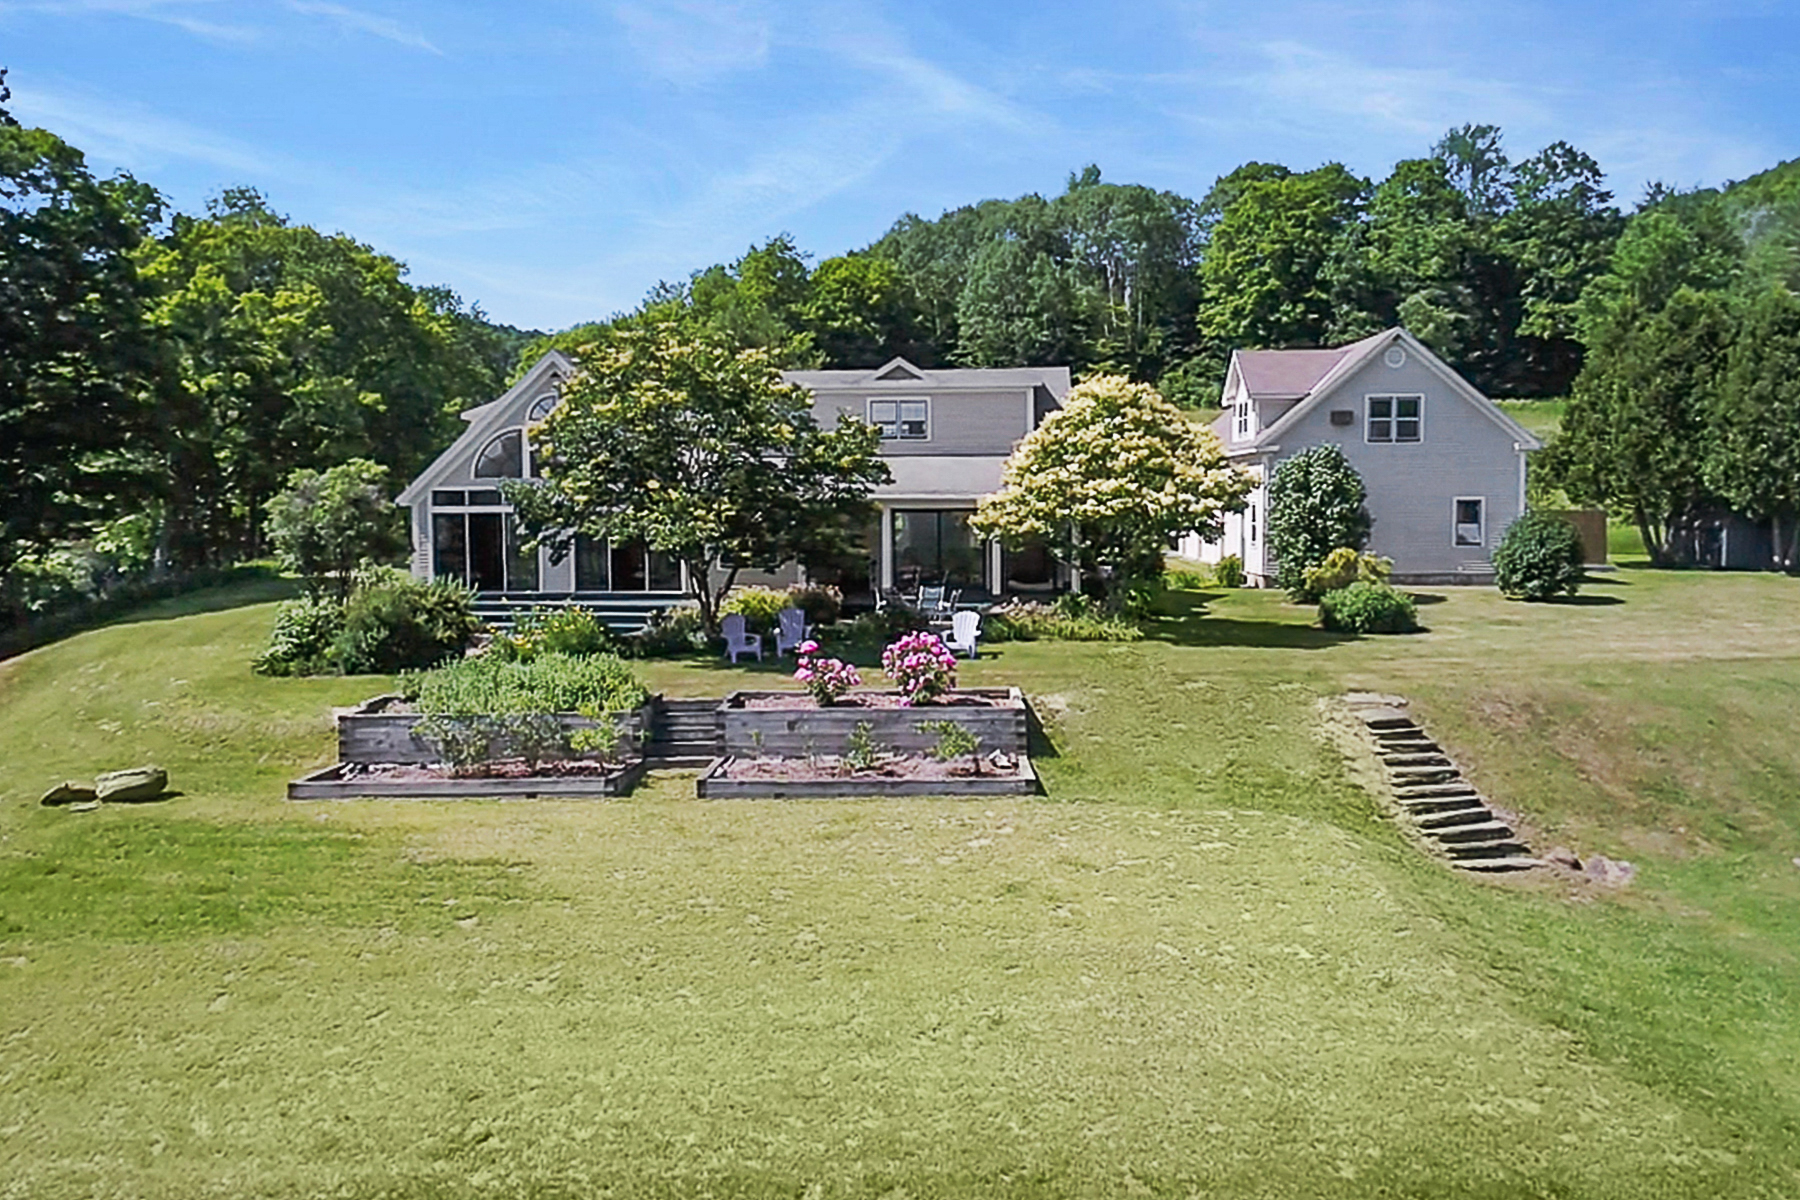 Single Family Home for Sale at 2280 Mill Road, Royalton 2280 Mill Rd Royalton, Vermont 05068 United States